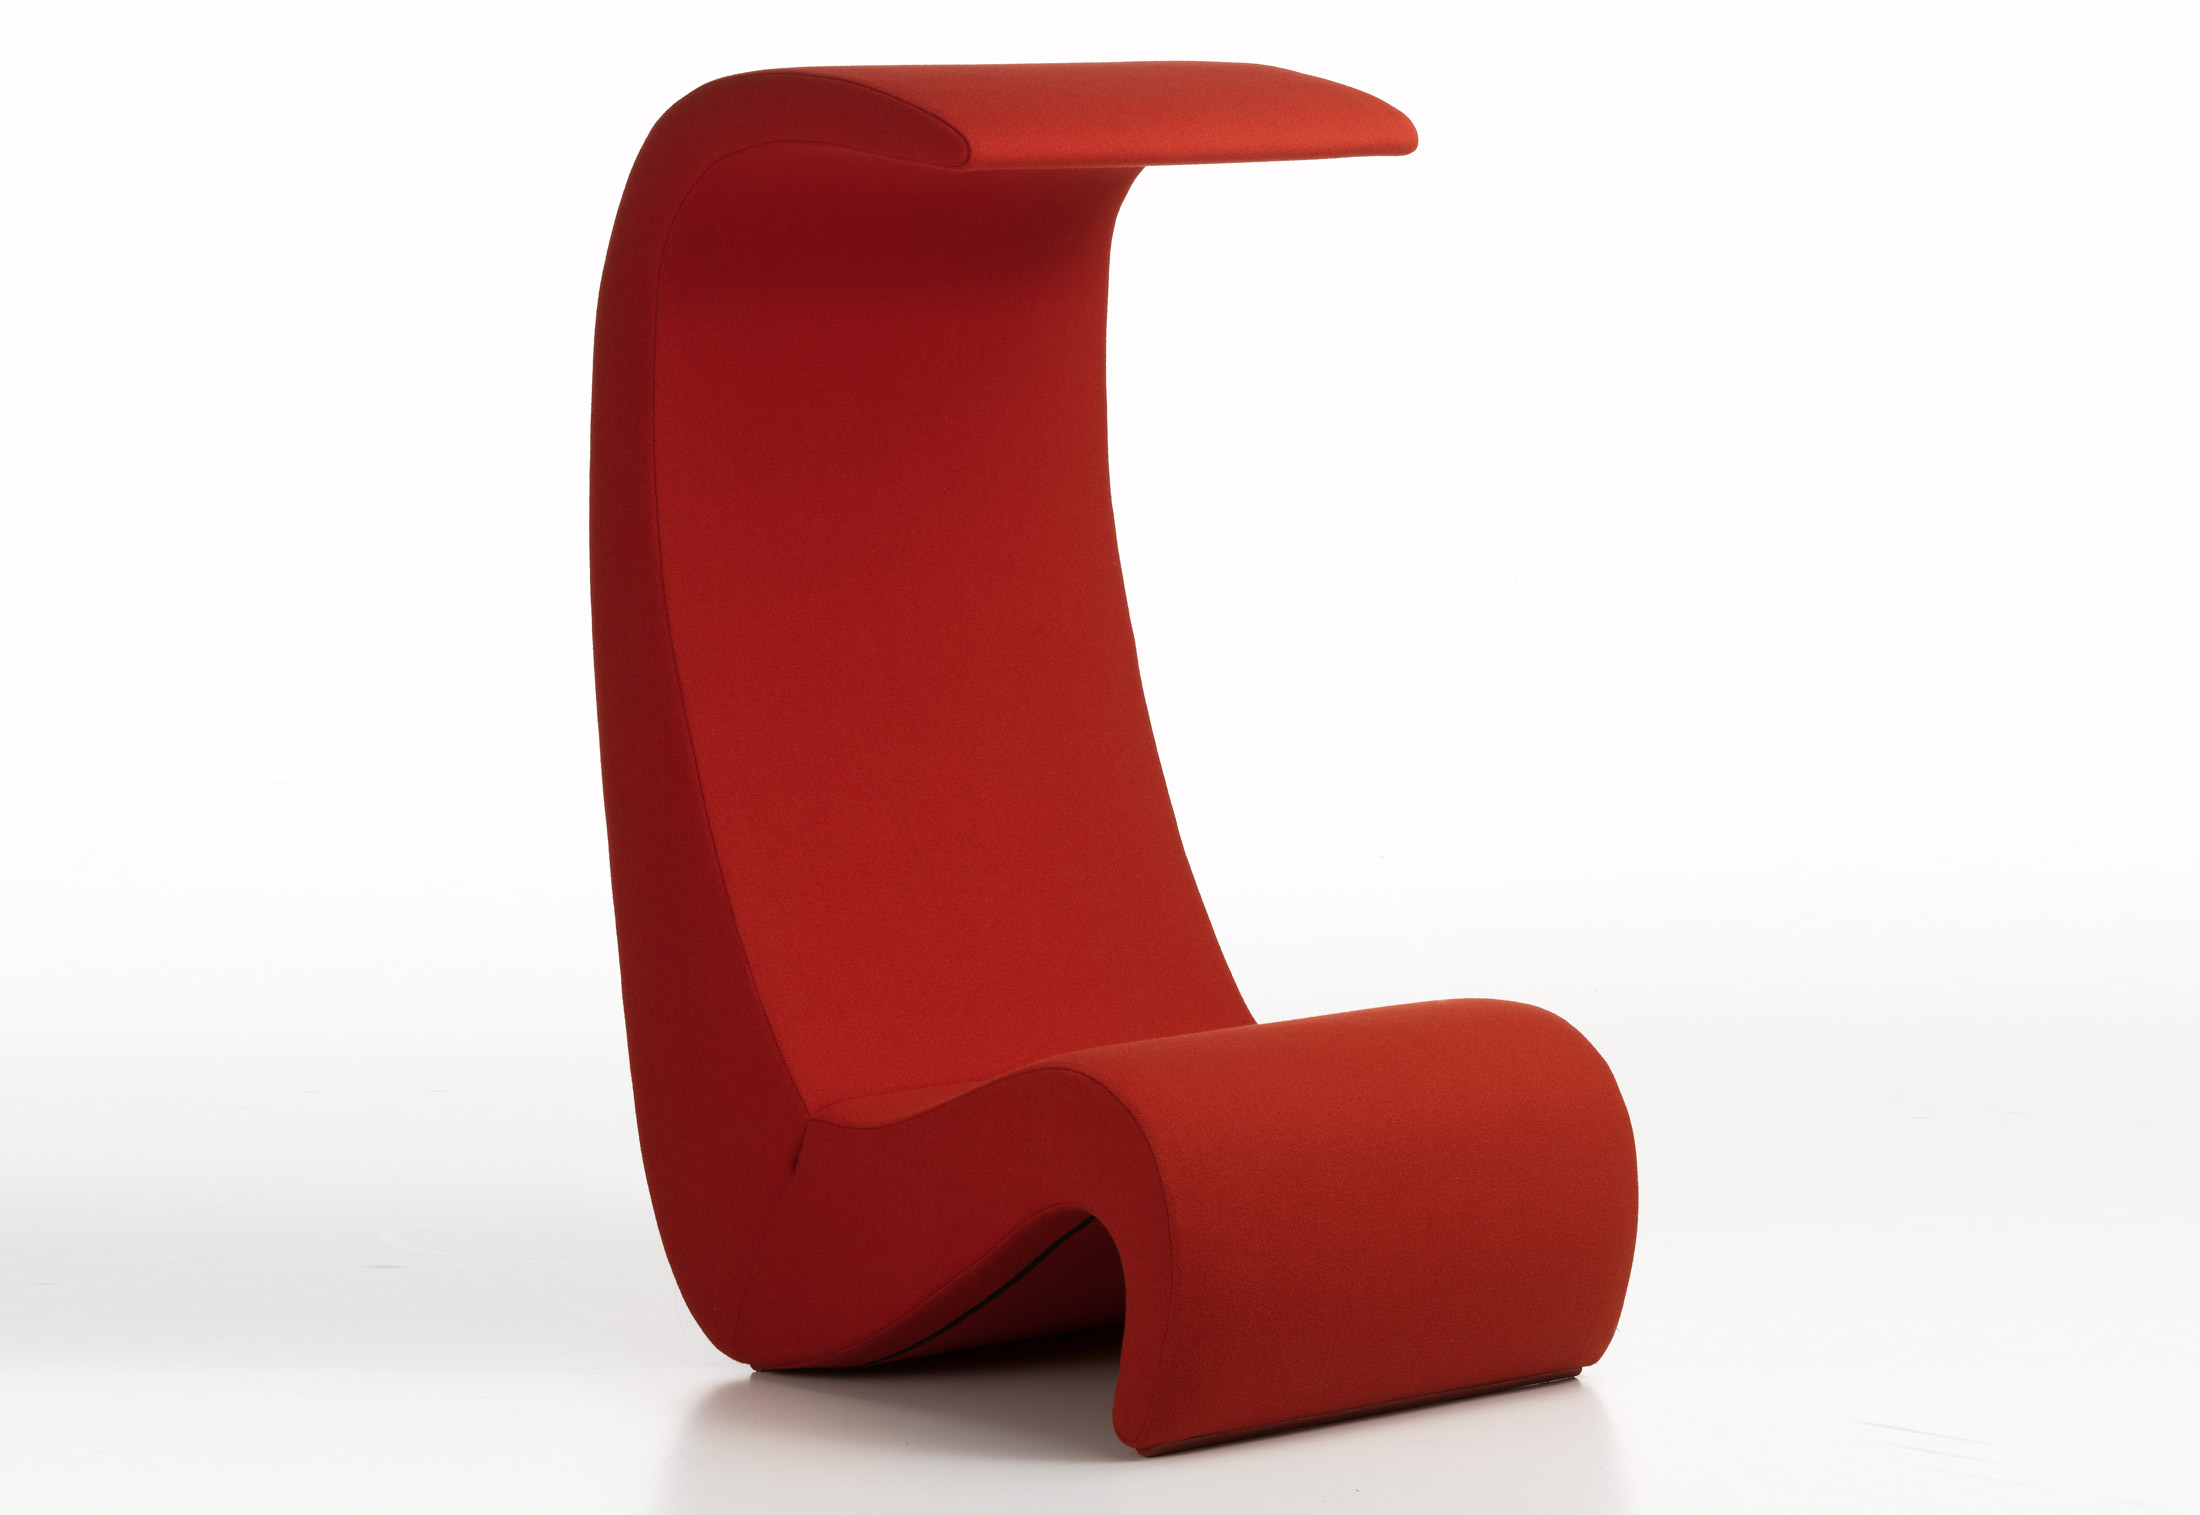 Timeless Design: Amoebe Highback by Verner Panton